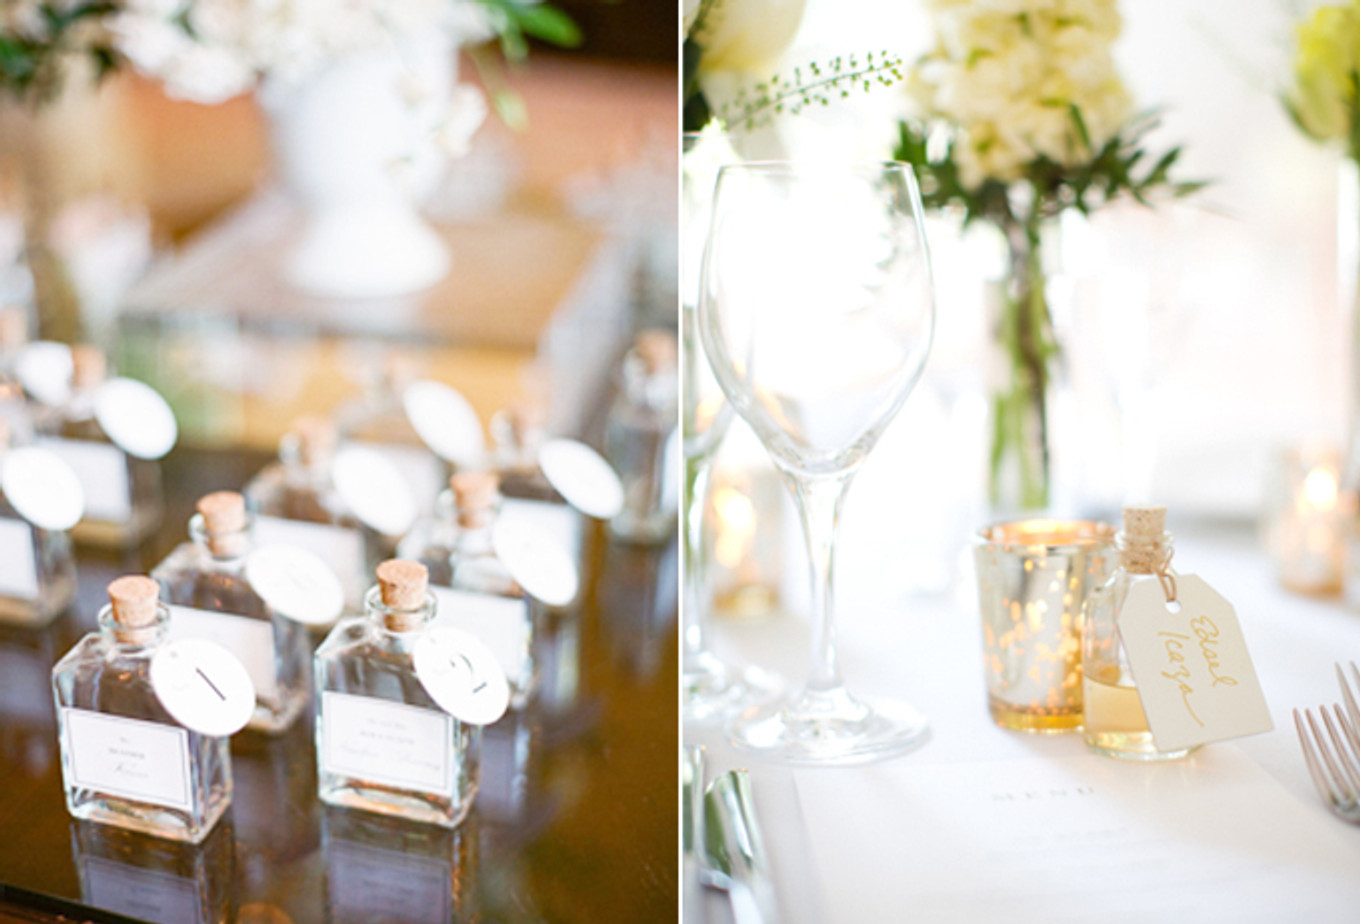 How to Seat Guests at Your Wedding Reception - Bridestory Blog